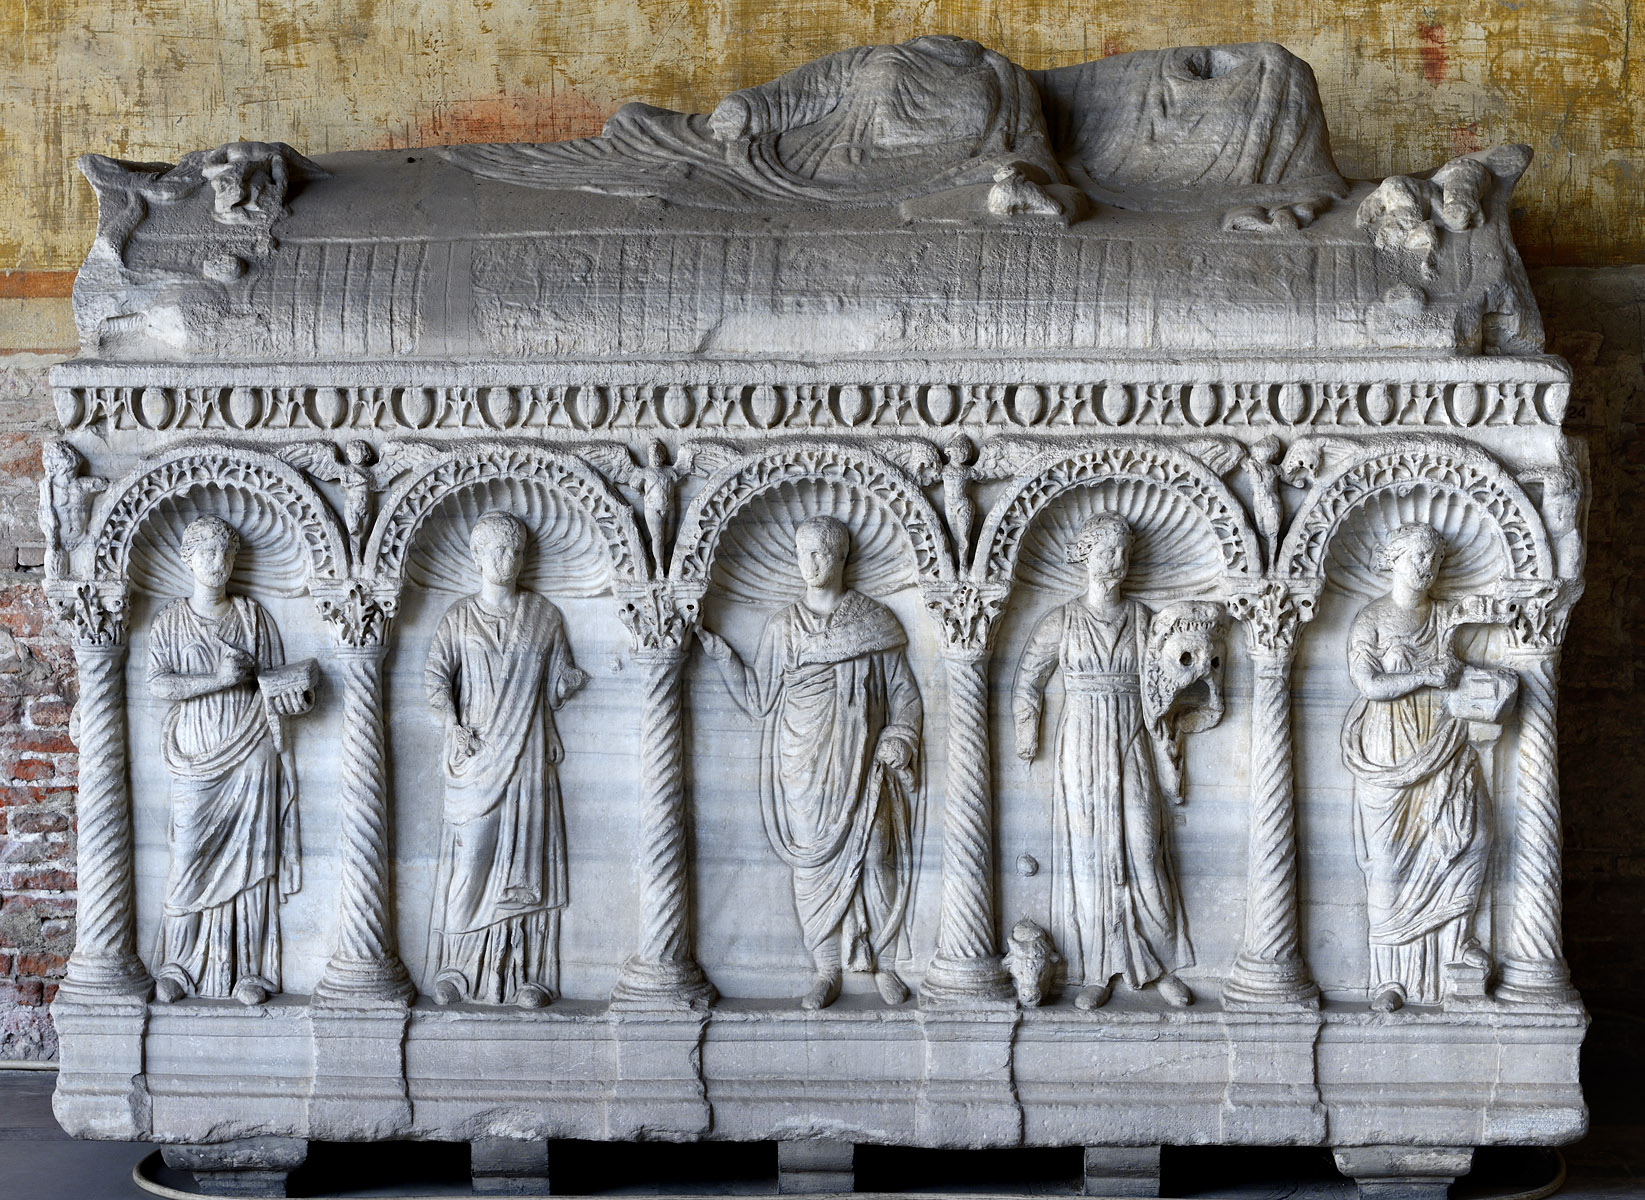 Sarcophagus with representation of the dead married couple and the Muses in arches (front panel). Marble. Rome. Ca. 250 CE. Inv. No. С 22 est. Pisa, Camposanto Monumentale